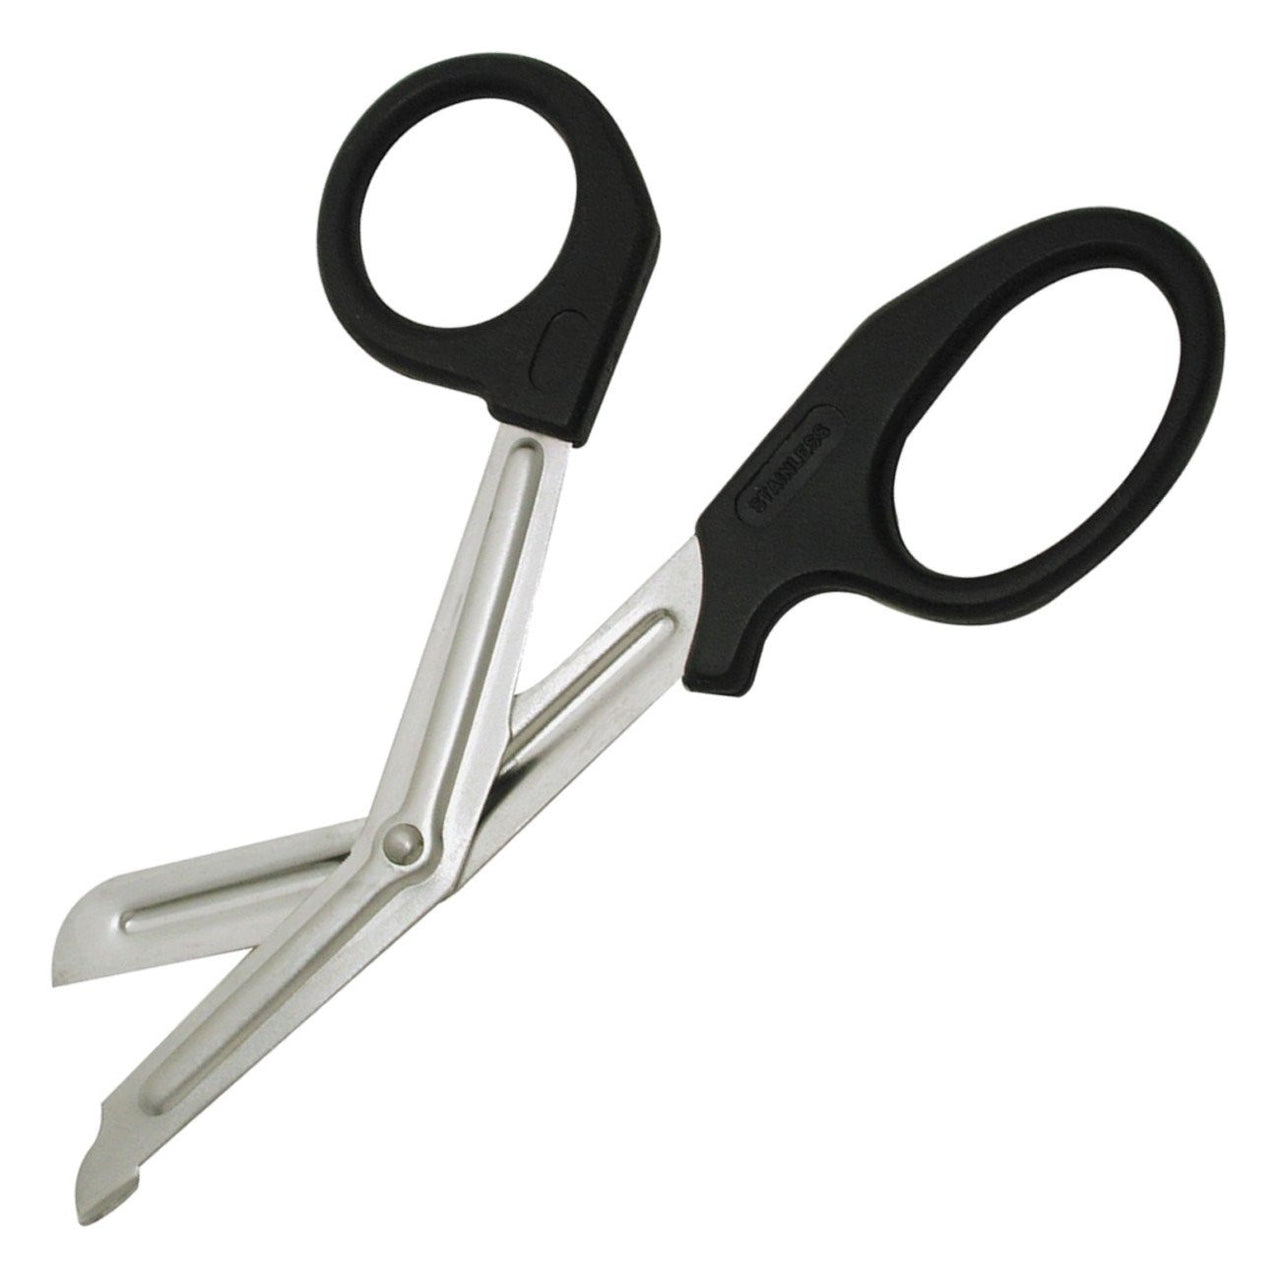 Cattle Boss Utility Scissors - Veterinary Instrumentation Cattle Boss - Canada